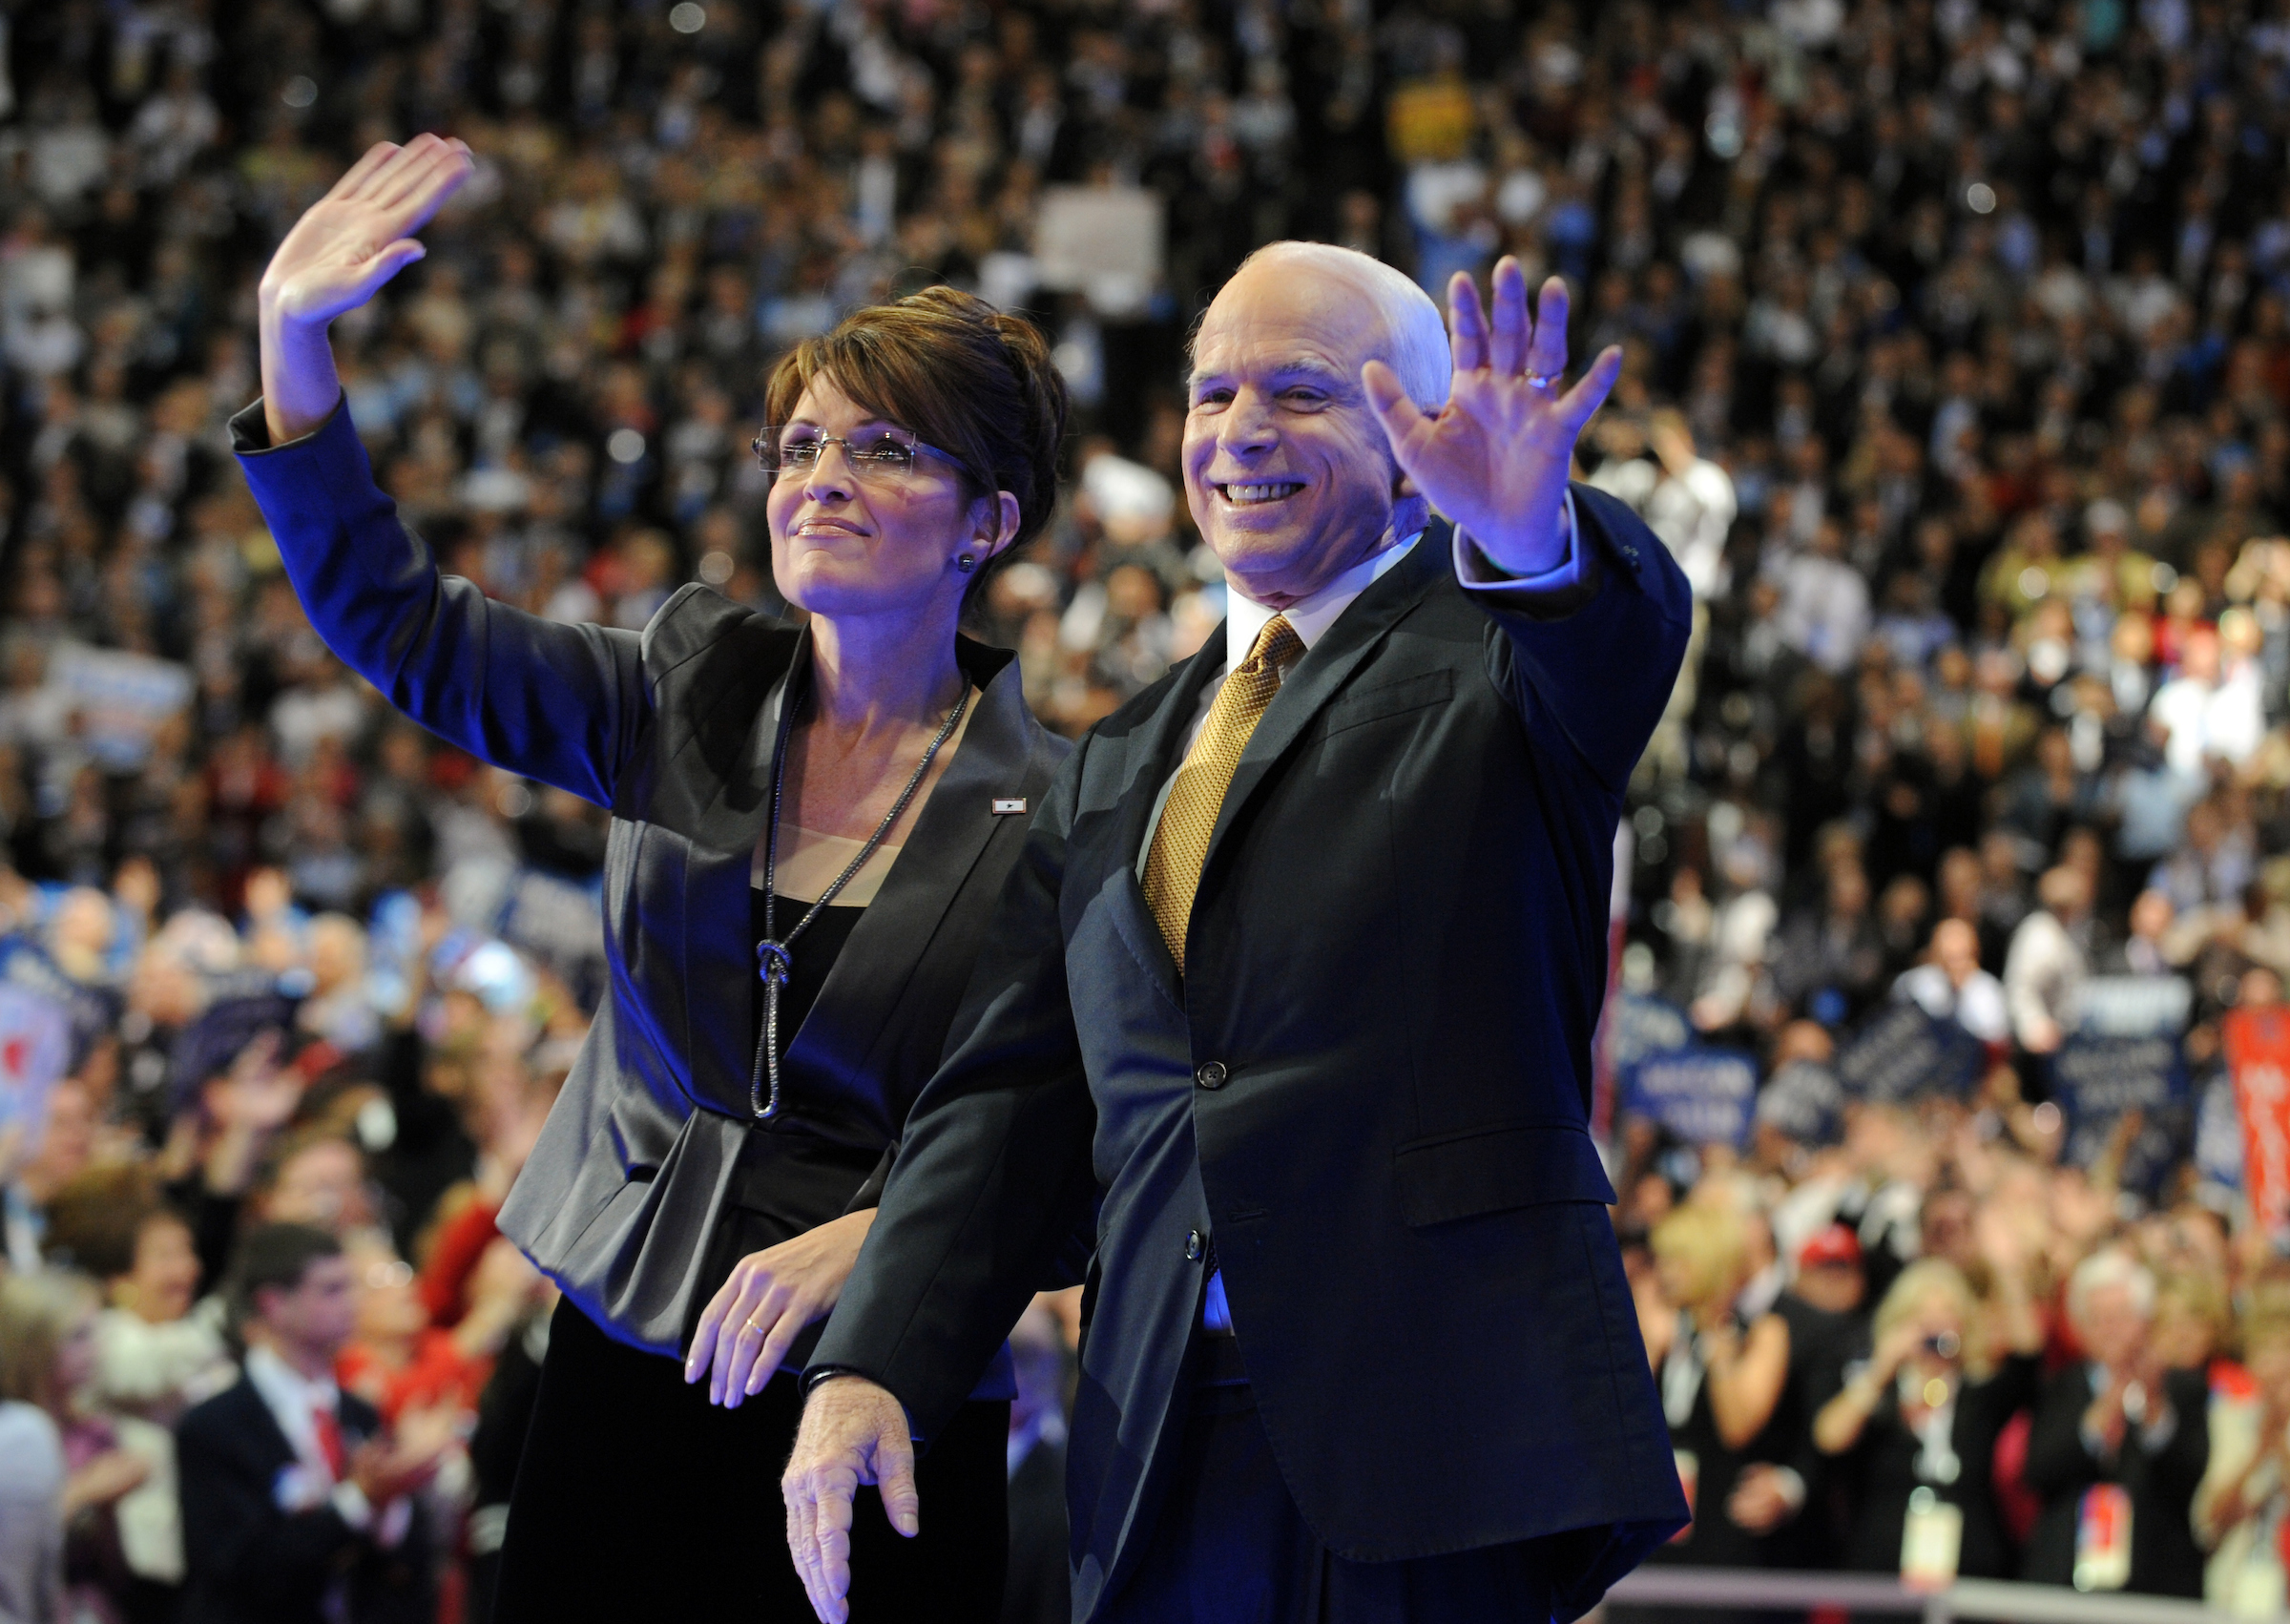 Sen. John McCain greets the crowd with his running mate Gov. Sarah Palin after he accepted the Republican nomination for president on the last night of the Republican National Convention held at the Xcel Center in St. Paul, September 4, 2008.